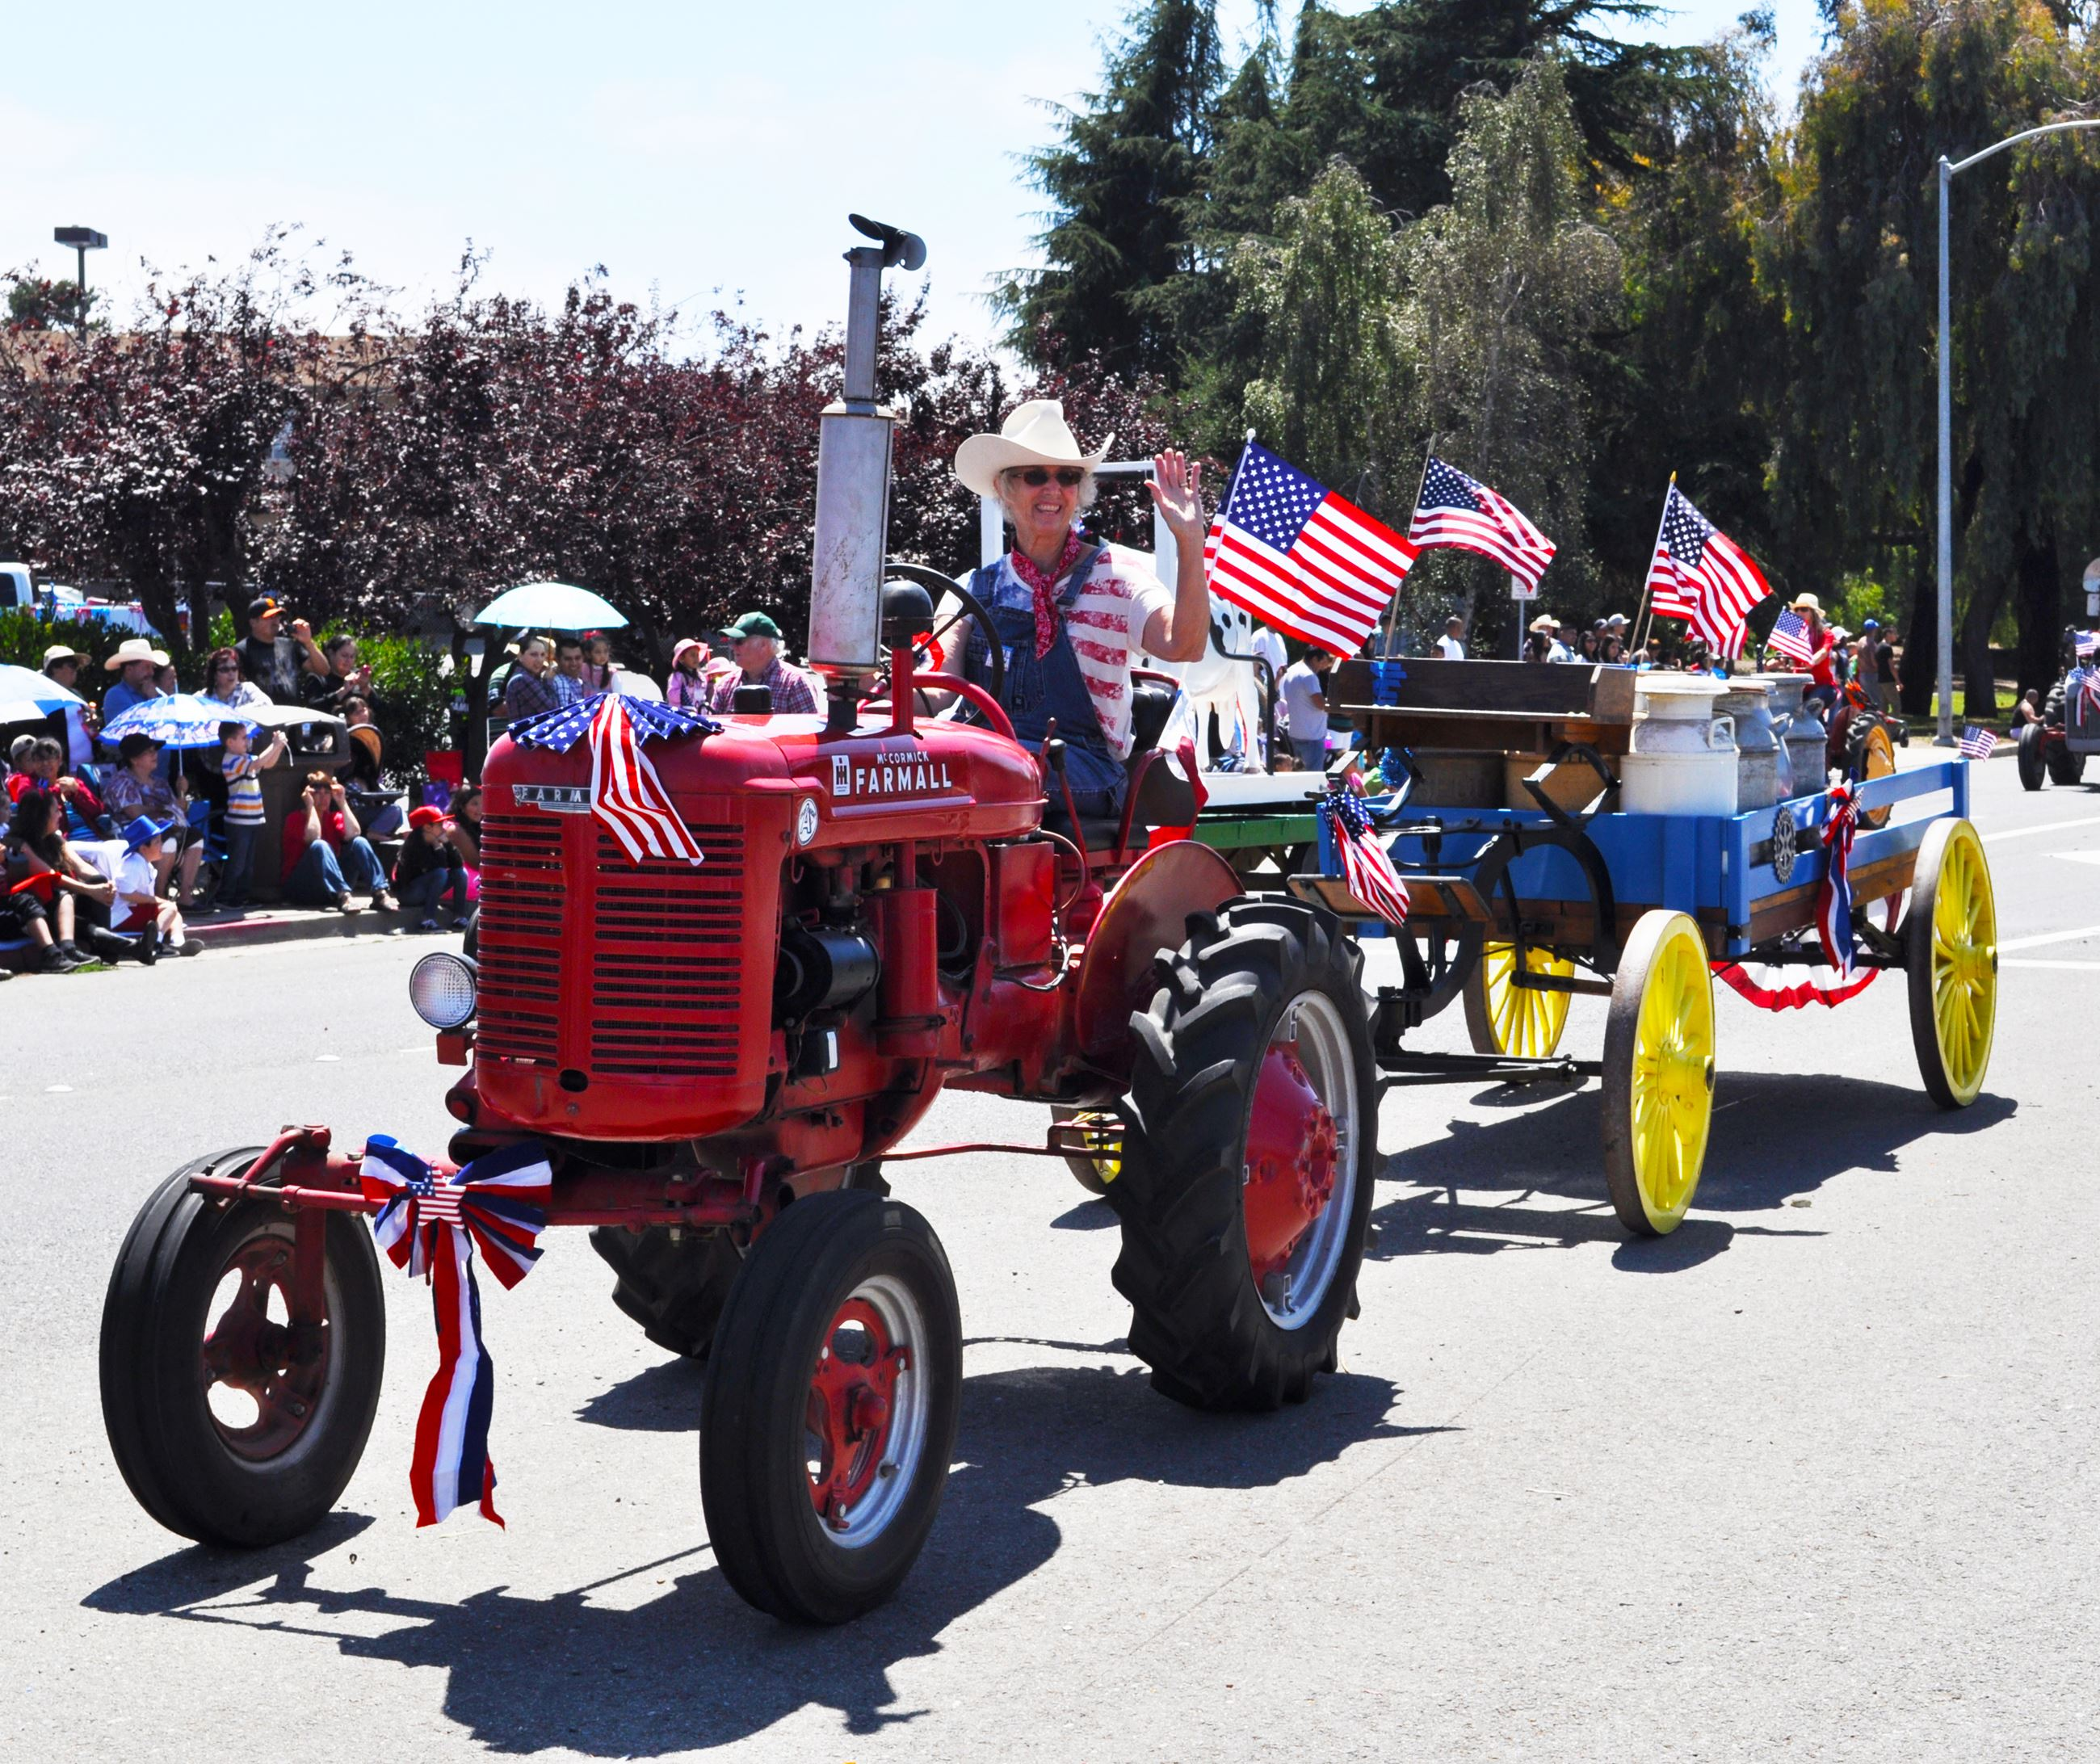 Parade participant waving from a tractor